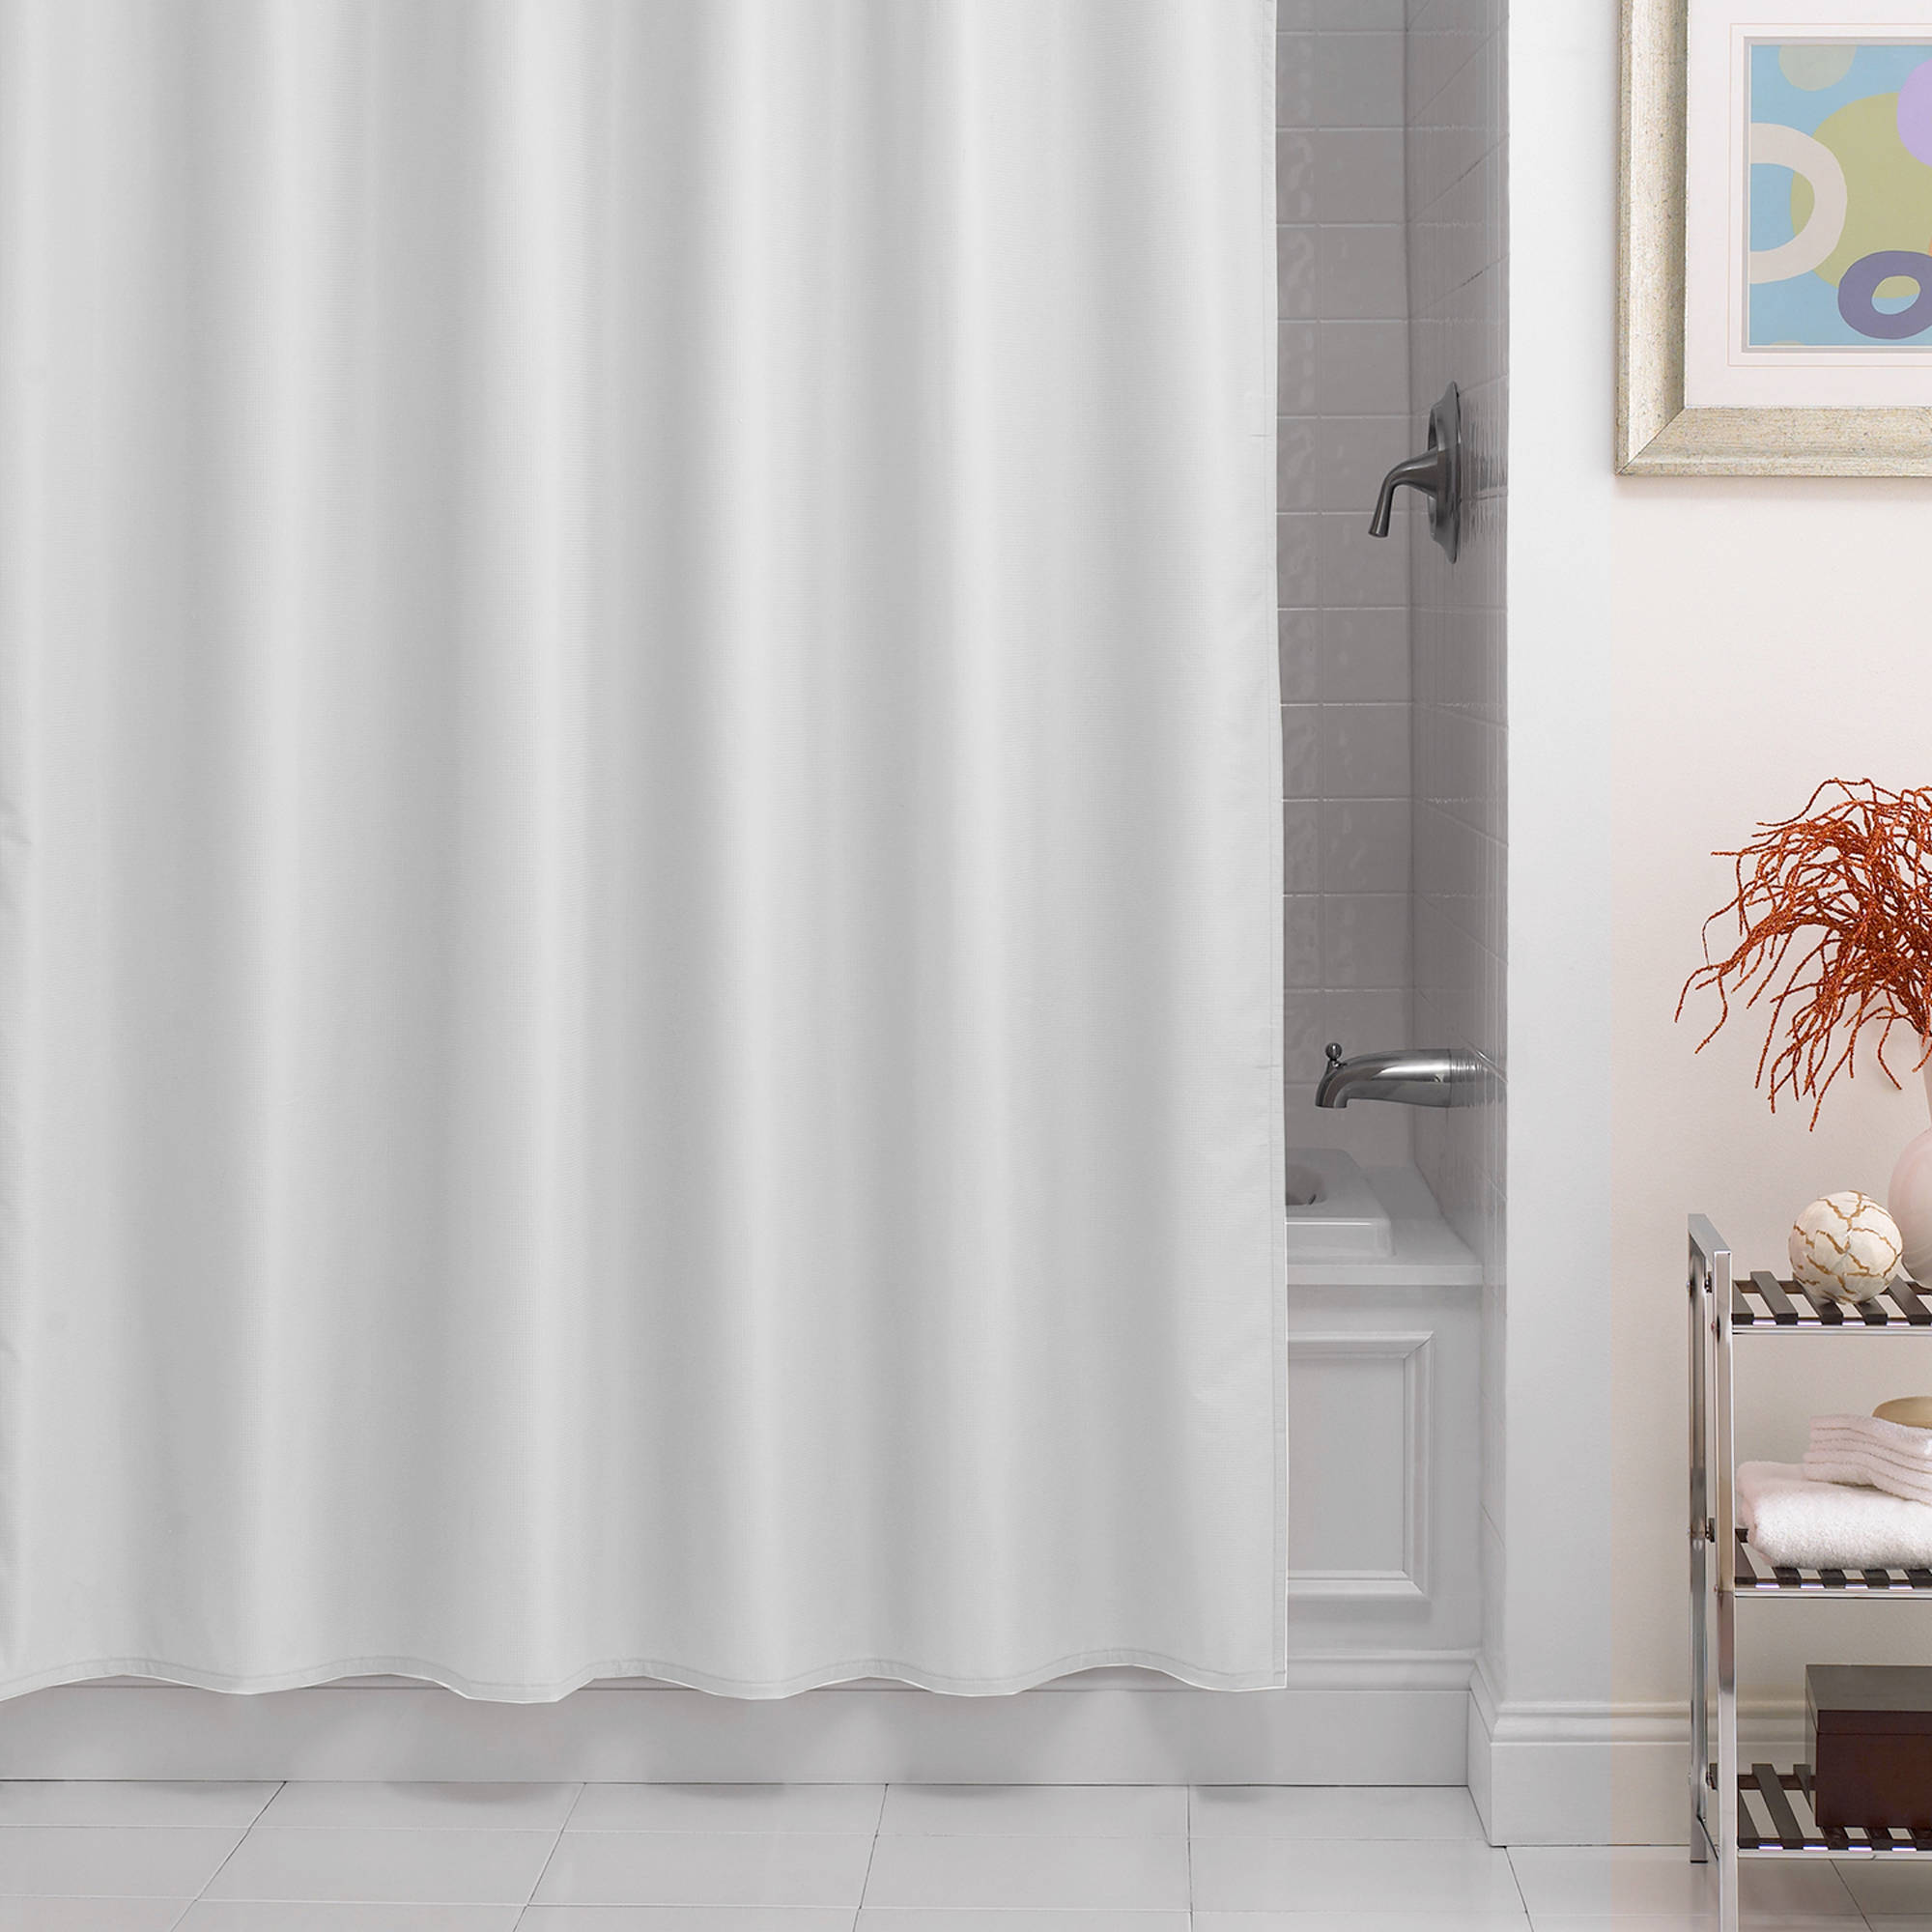 Excell Dobby Fabric Shower Curtain Liner